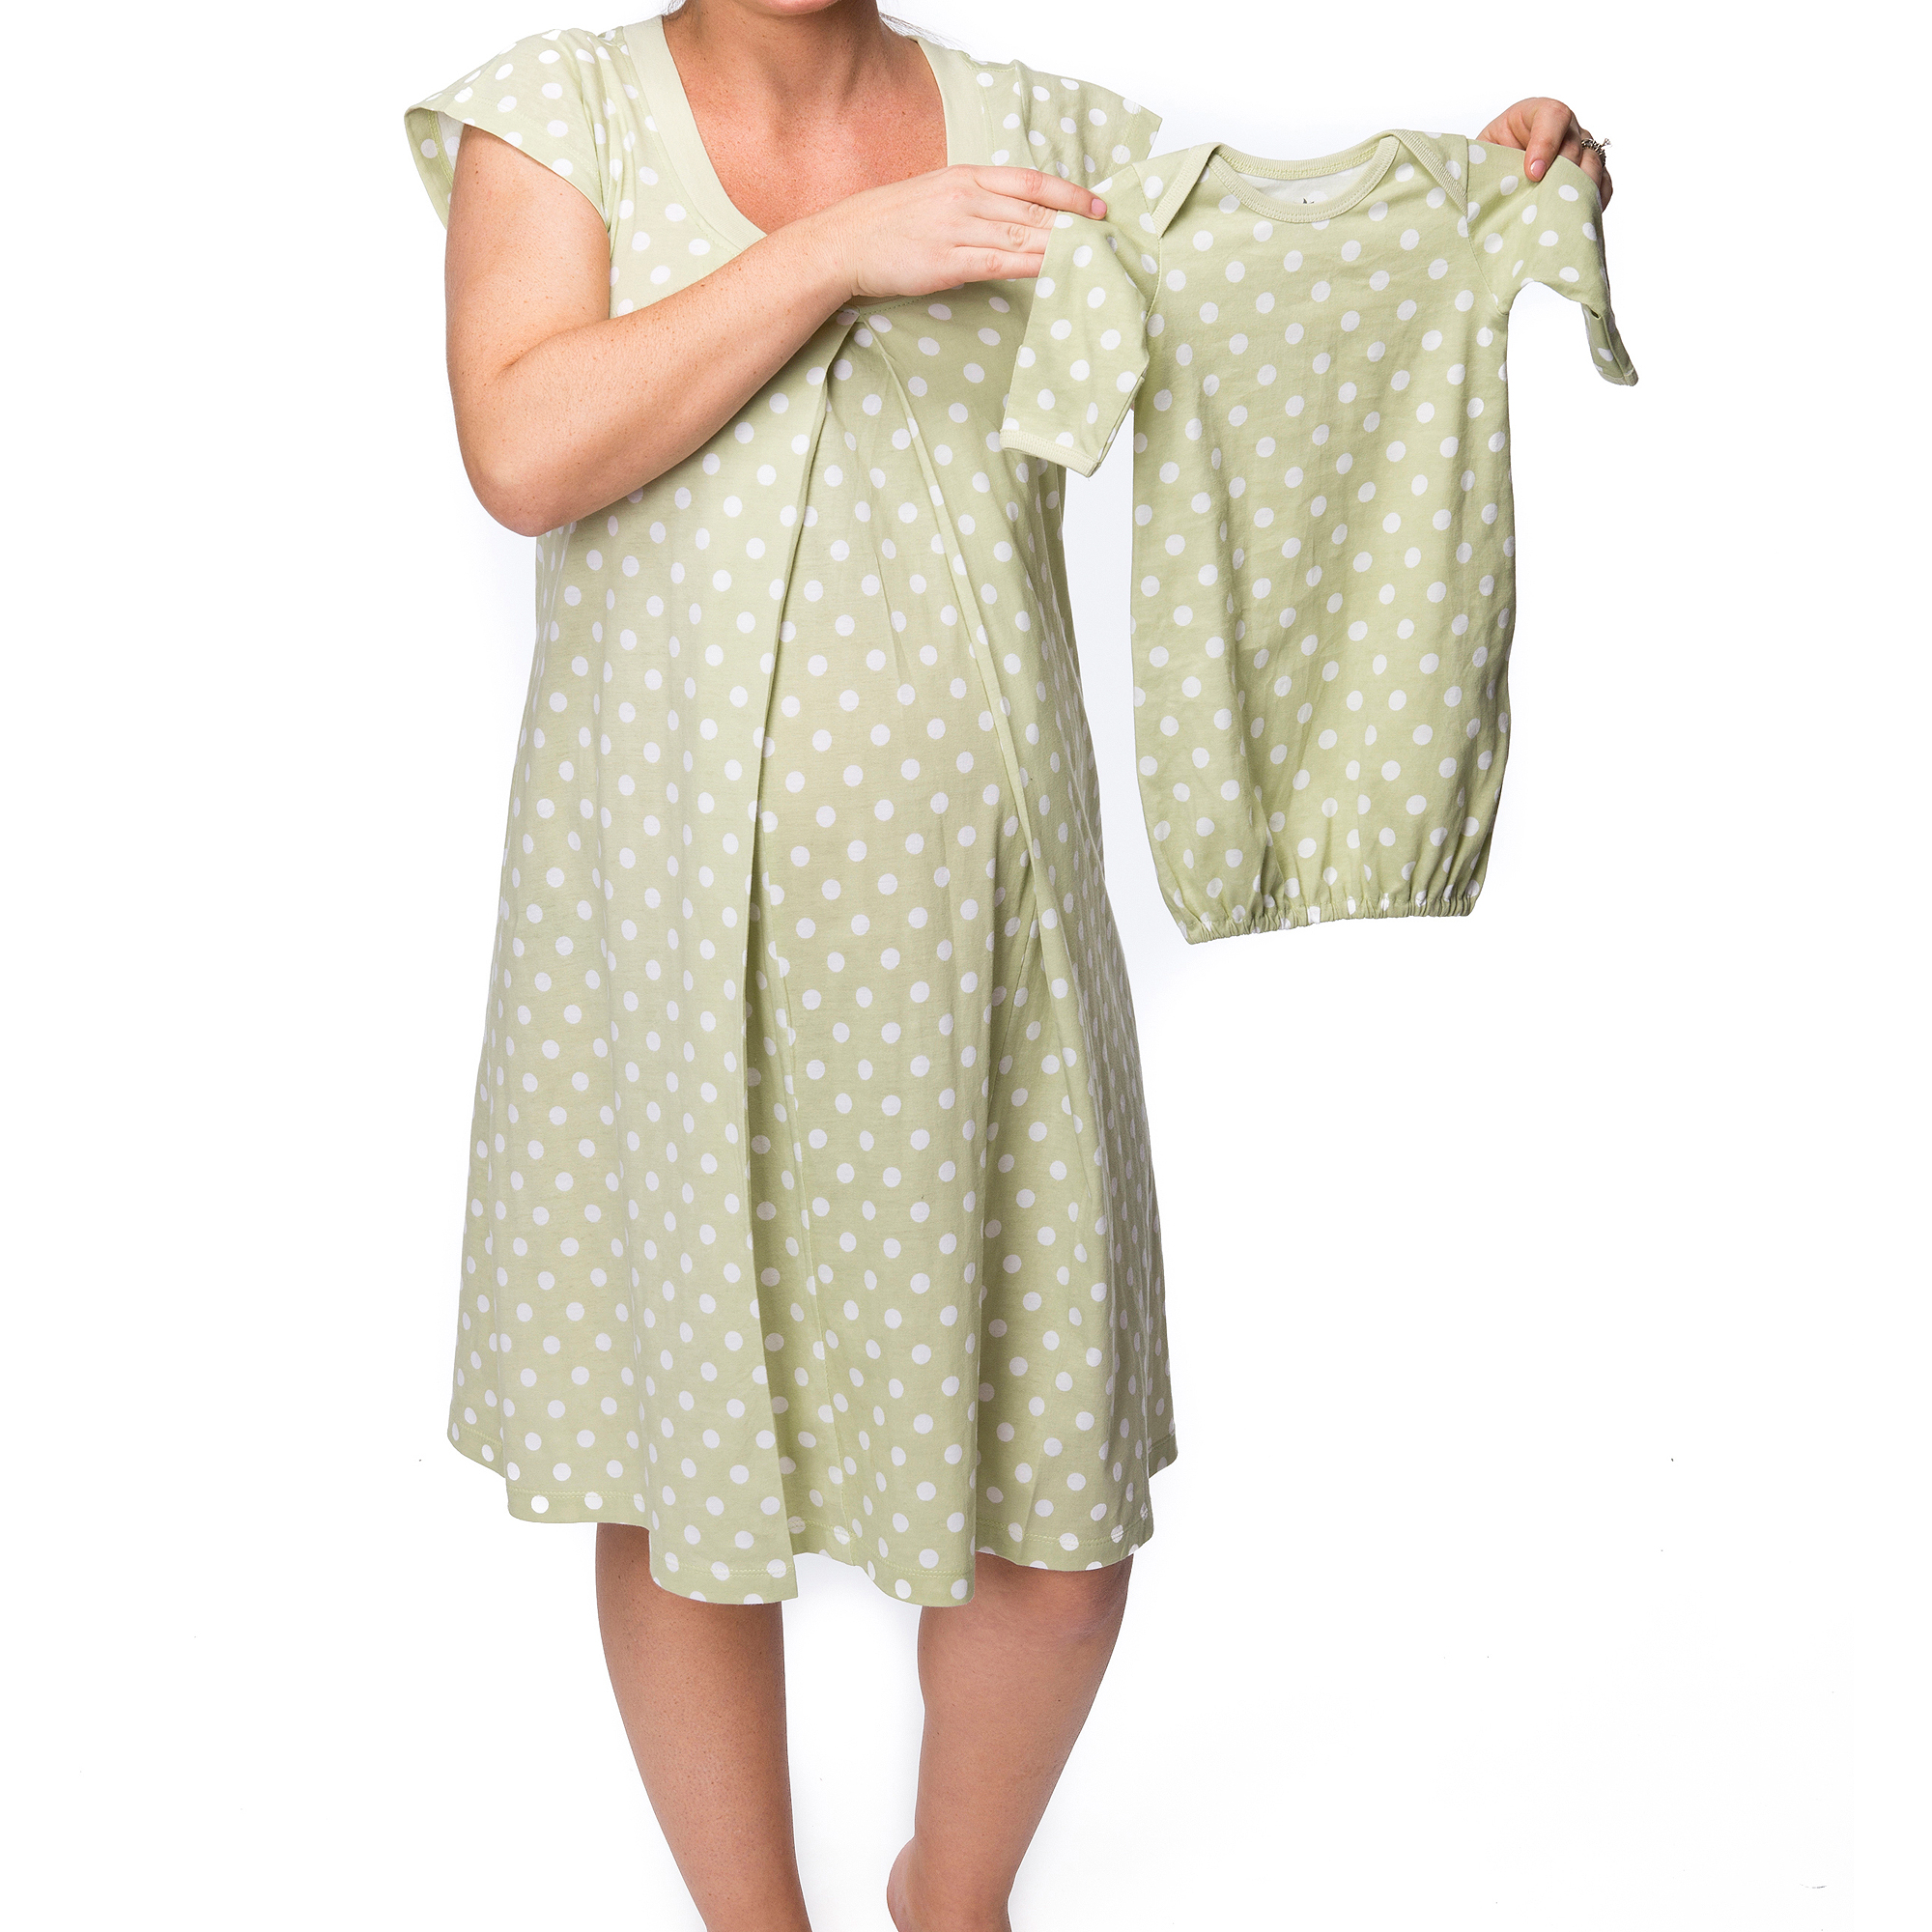 Baby Be Mine Maternity Nursing Nightgown with Romper - Walmart.com